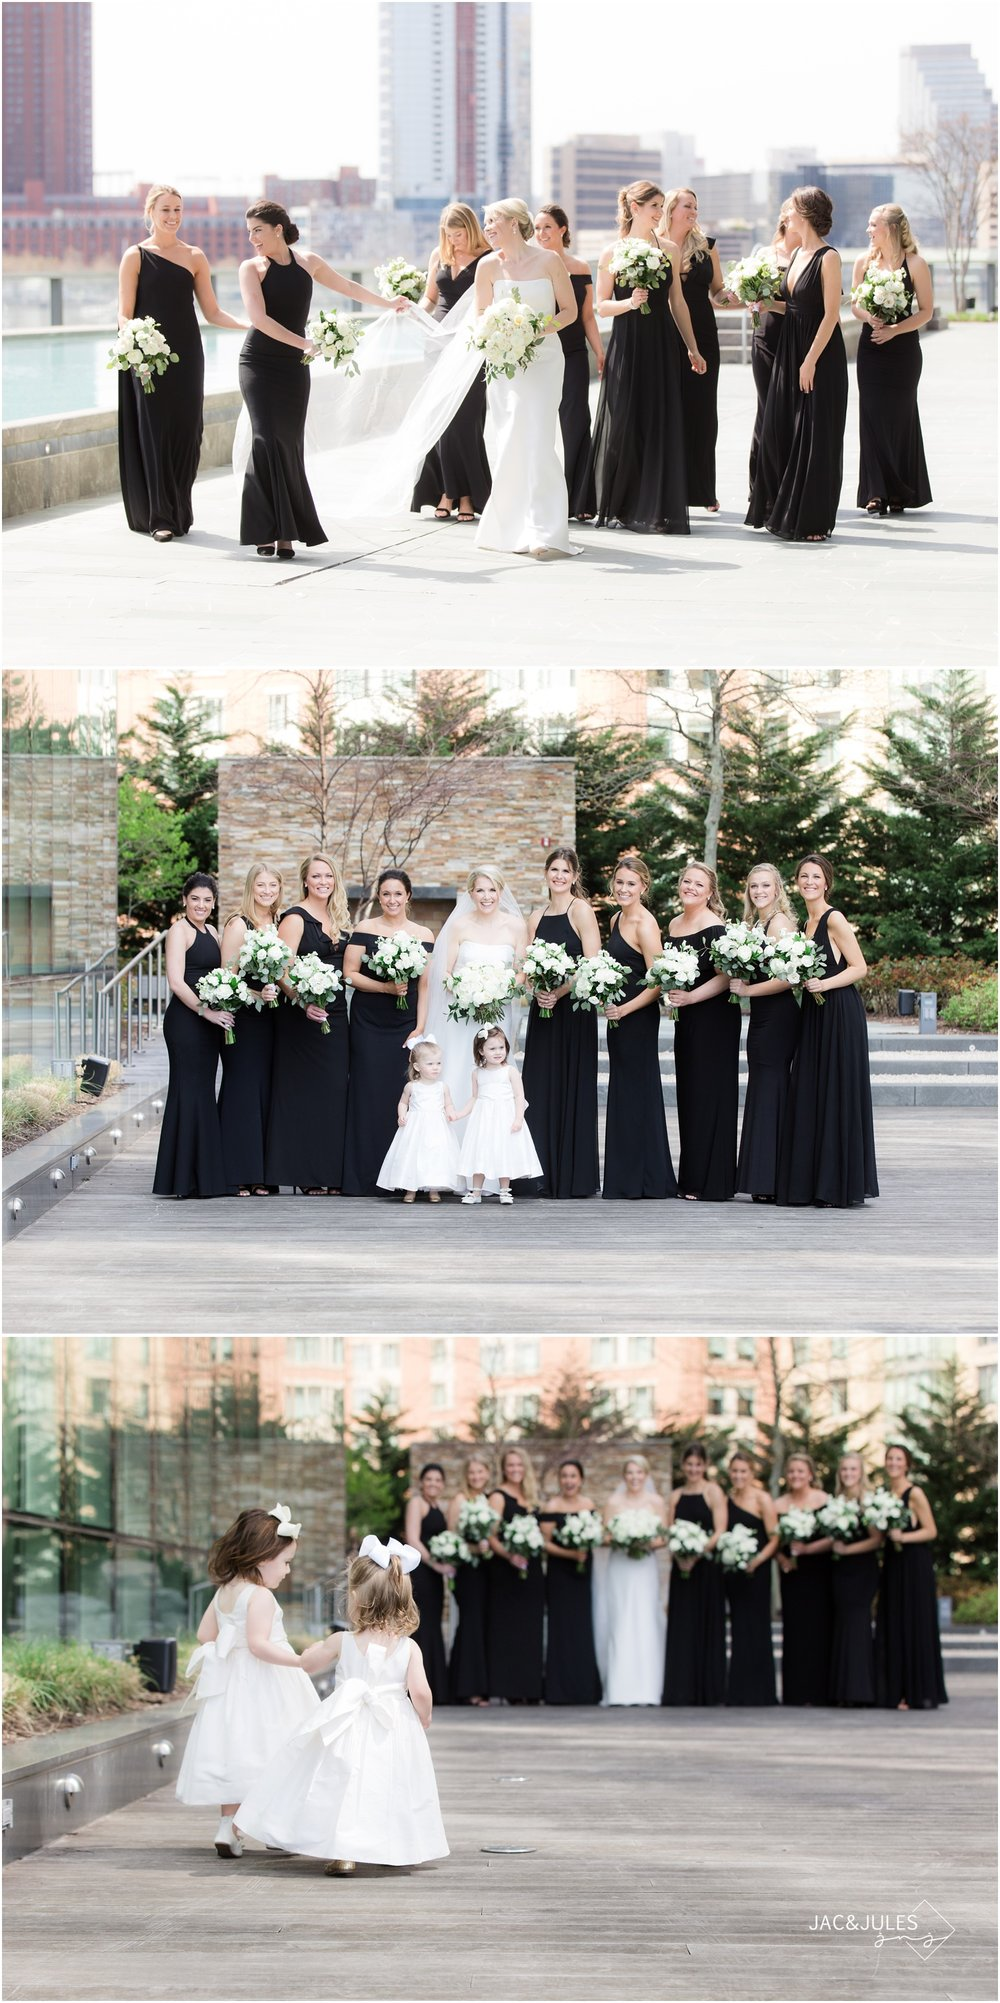 Bridesmaids photos at The Four Seasons Hotel in Baltimore, MD.